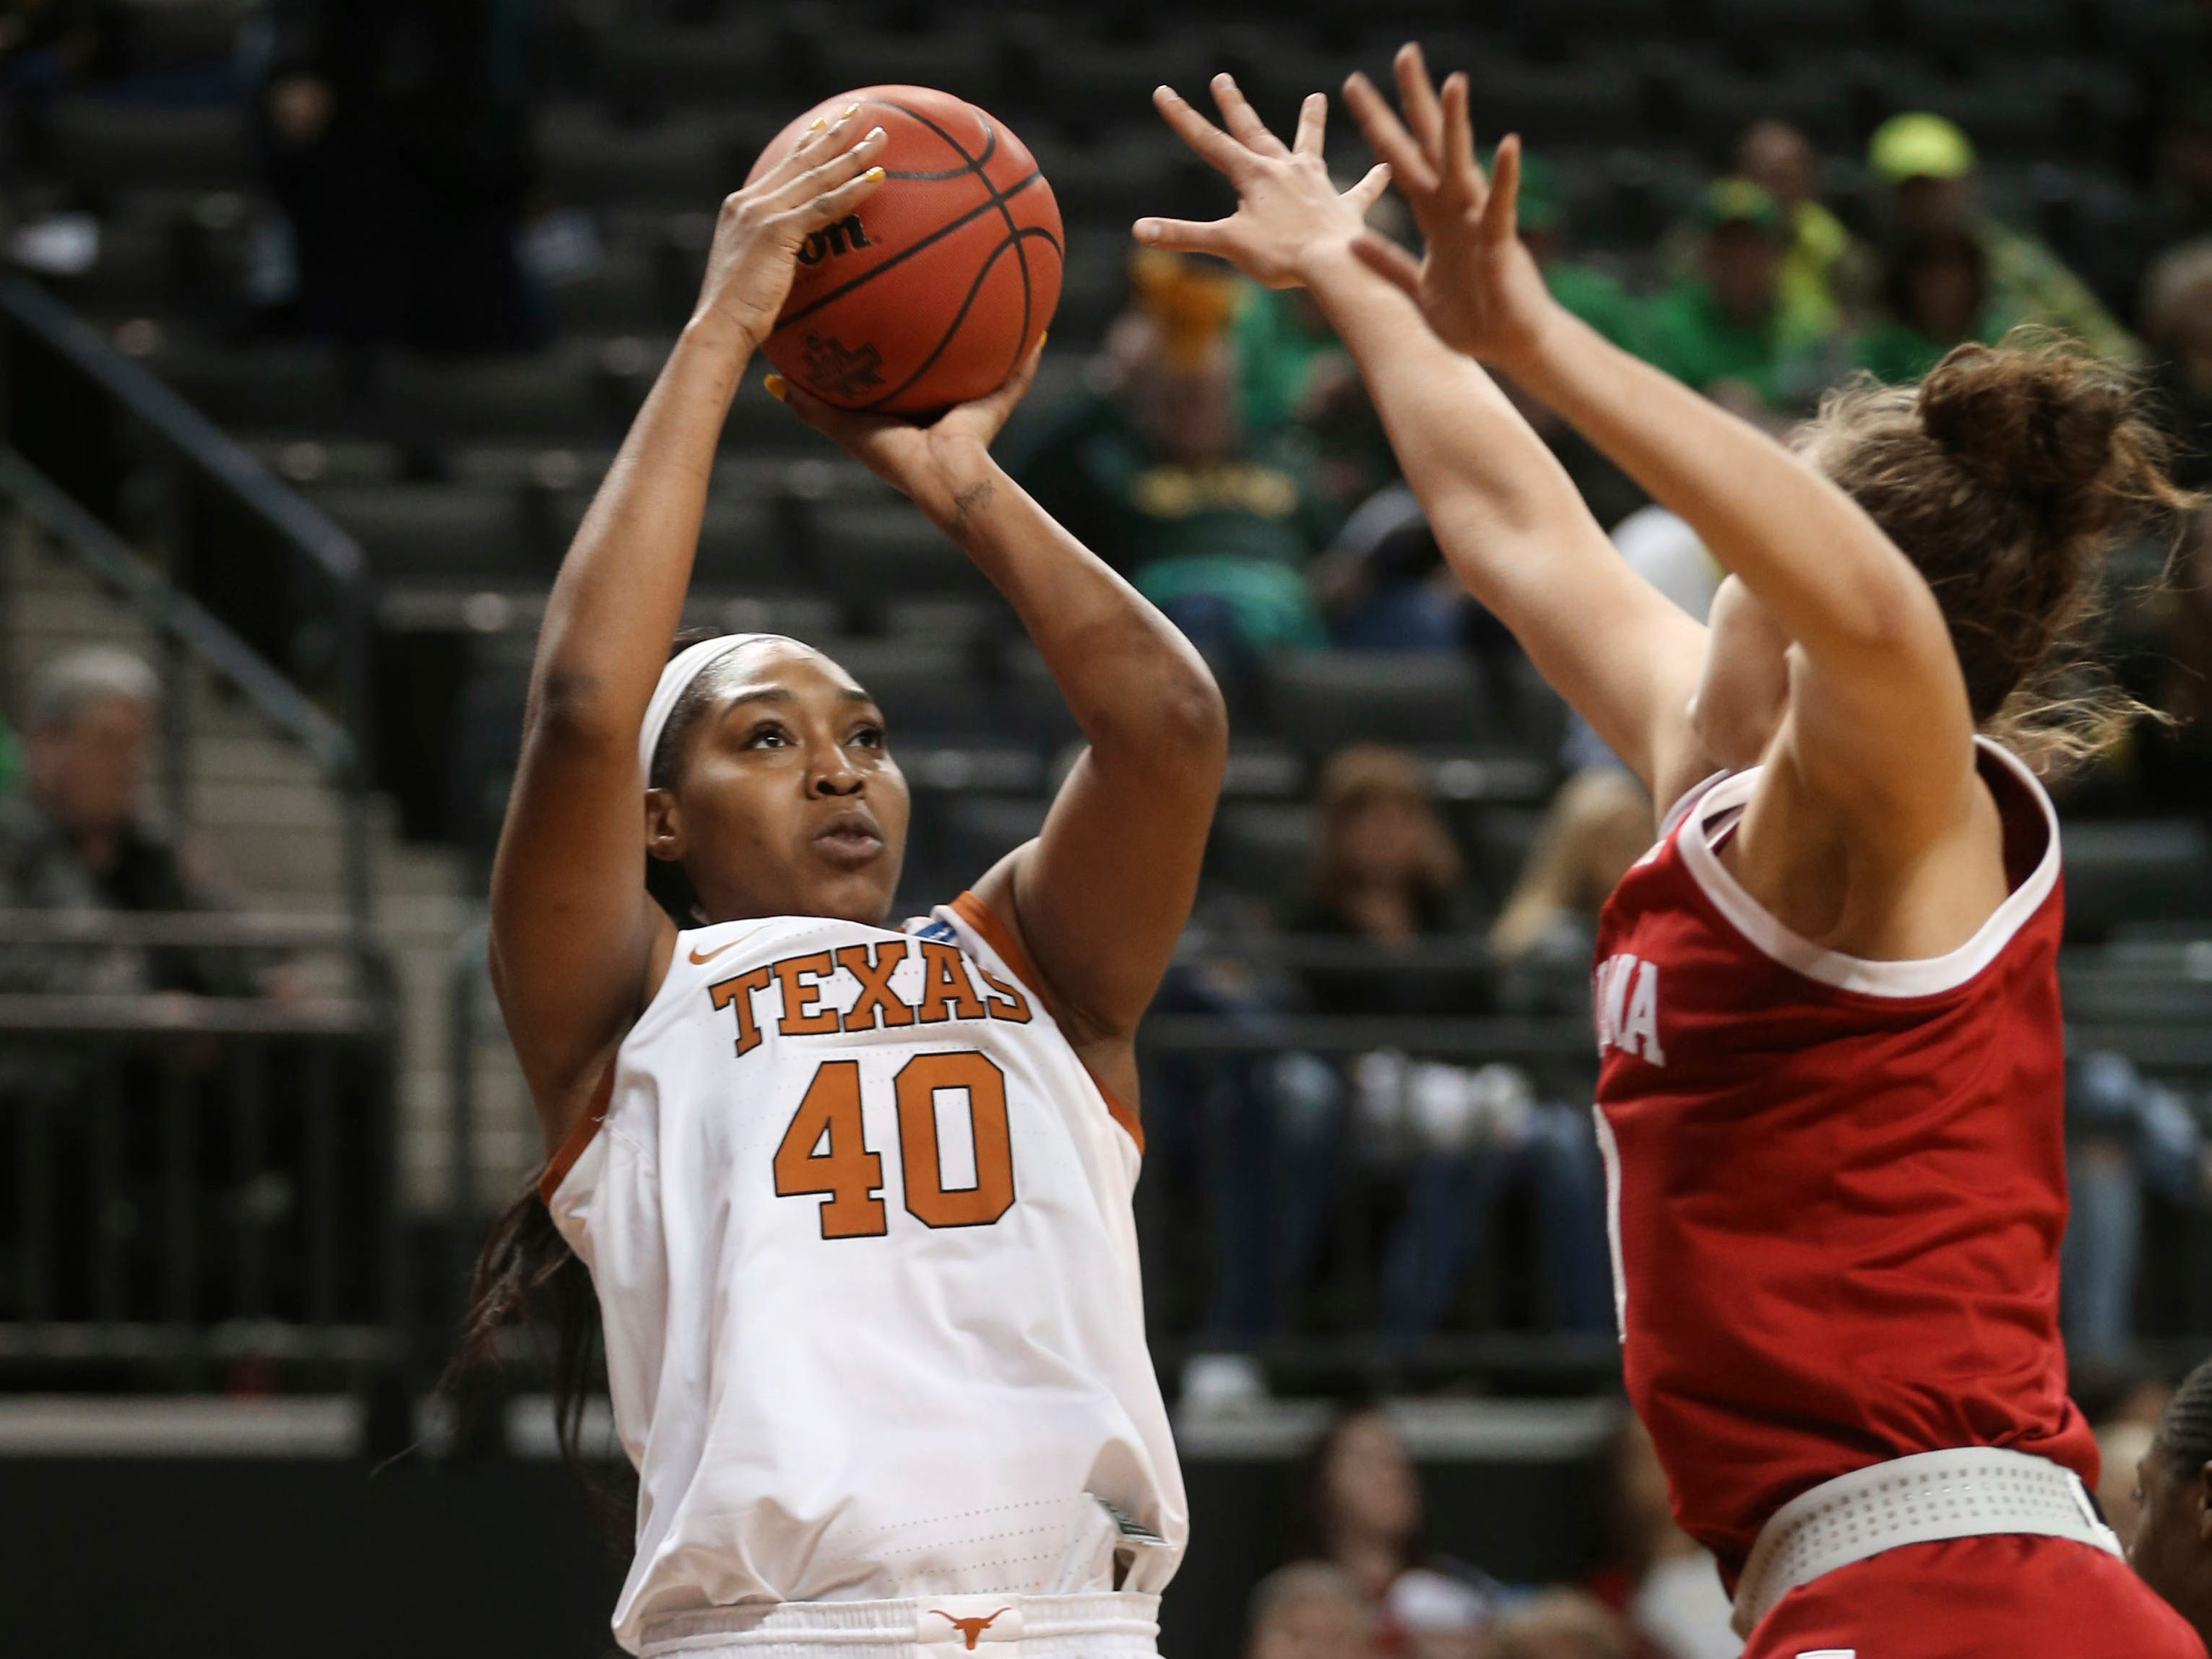 Texas' Jatarie White, left, shots over Indiana's Aleksa Gulbe during the first half of a first-round game in the NCAA women's college basketball tournament Friday, March 22, 2019, in Eugene, Ore. (AP Photo/Chris Pietsch)